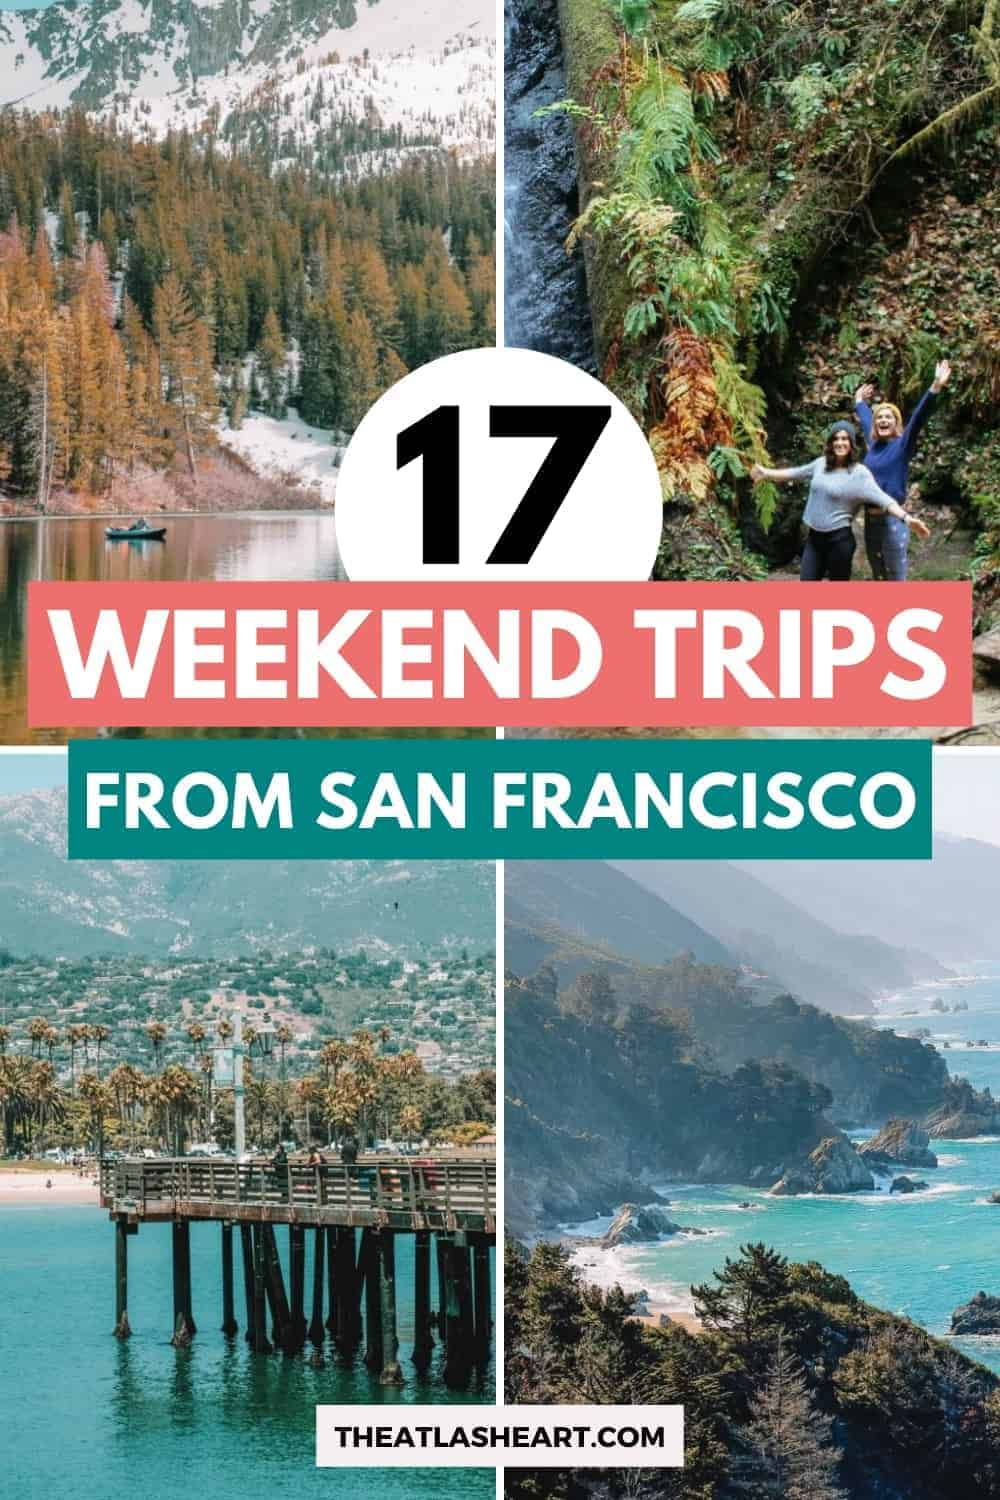 18 Best Weekend Trips From San Francisco (From a Local)